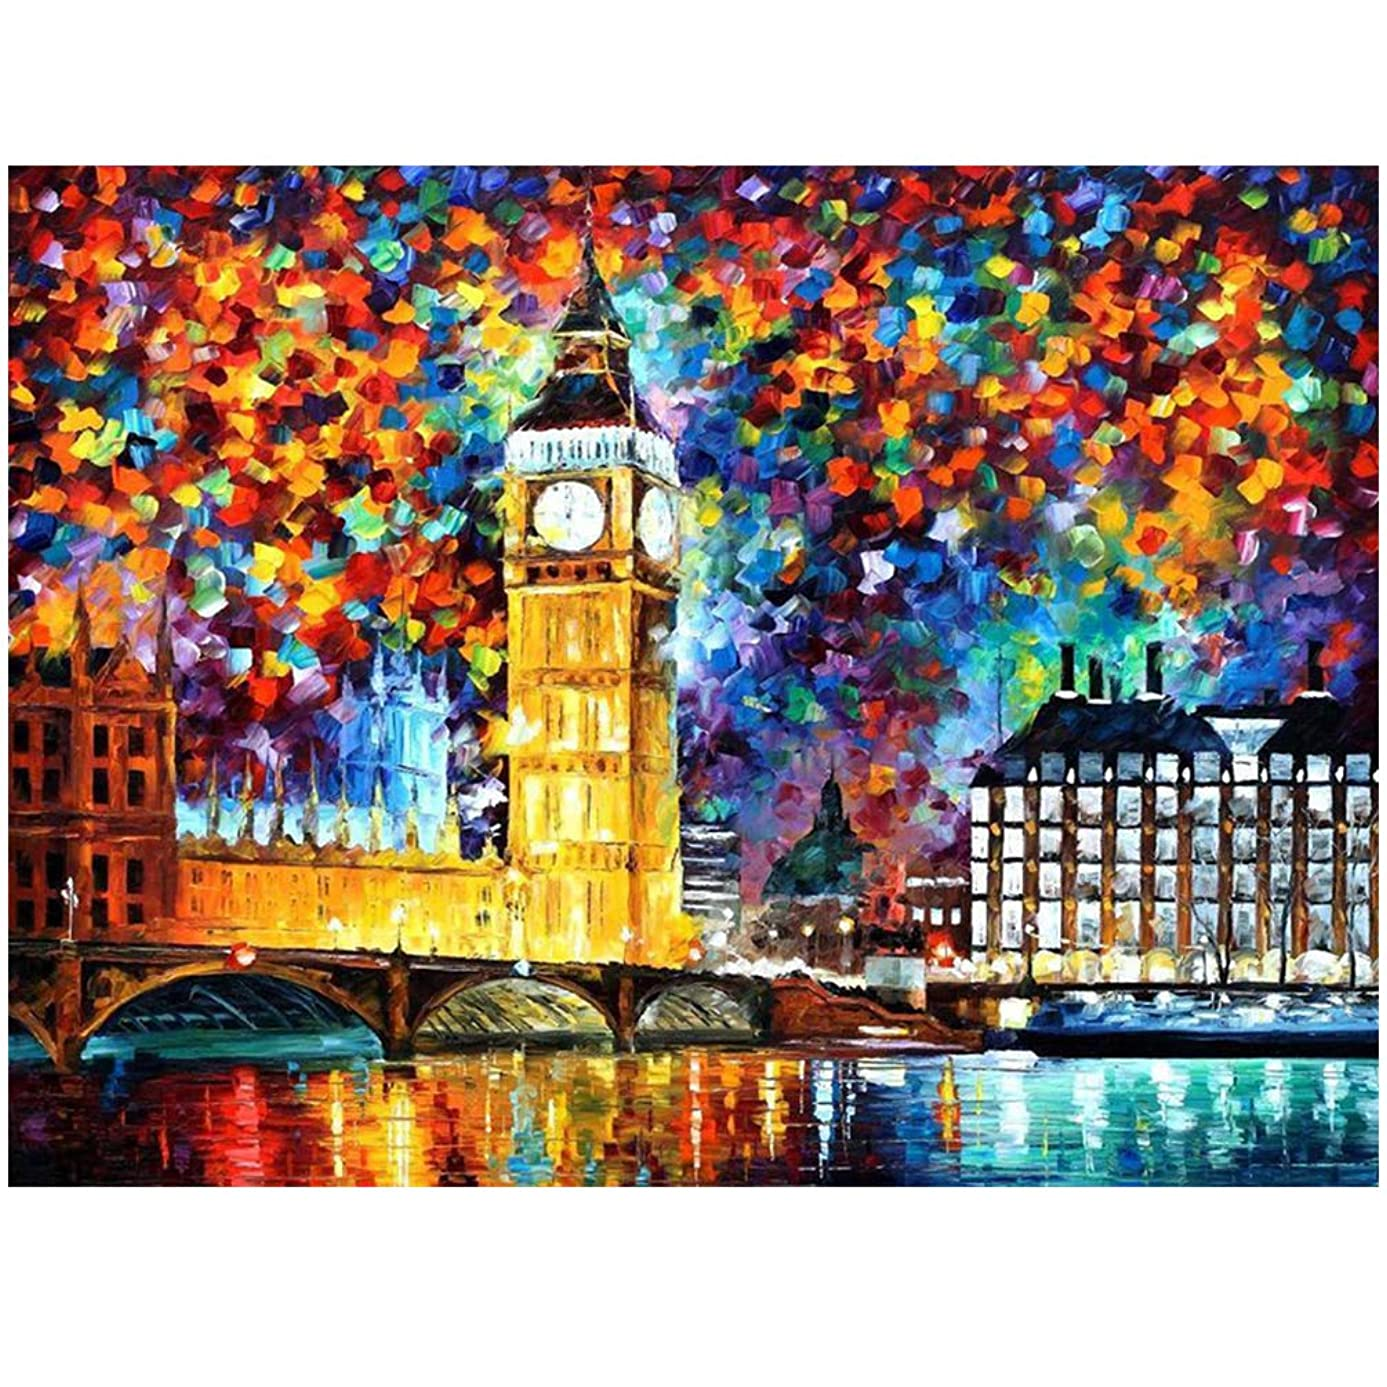 """Madealer Square 5D Diamond Painting Kits for Adults Full Drill Large 16""""X20""""-Big Ben"""